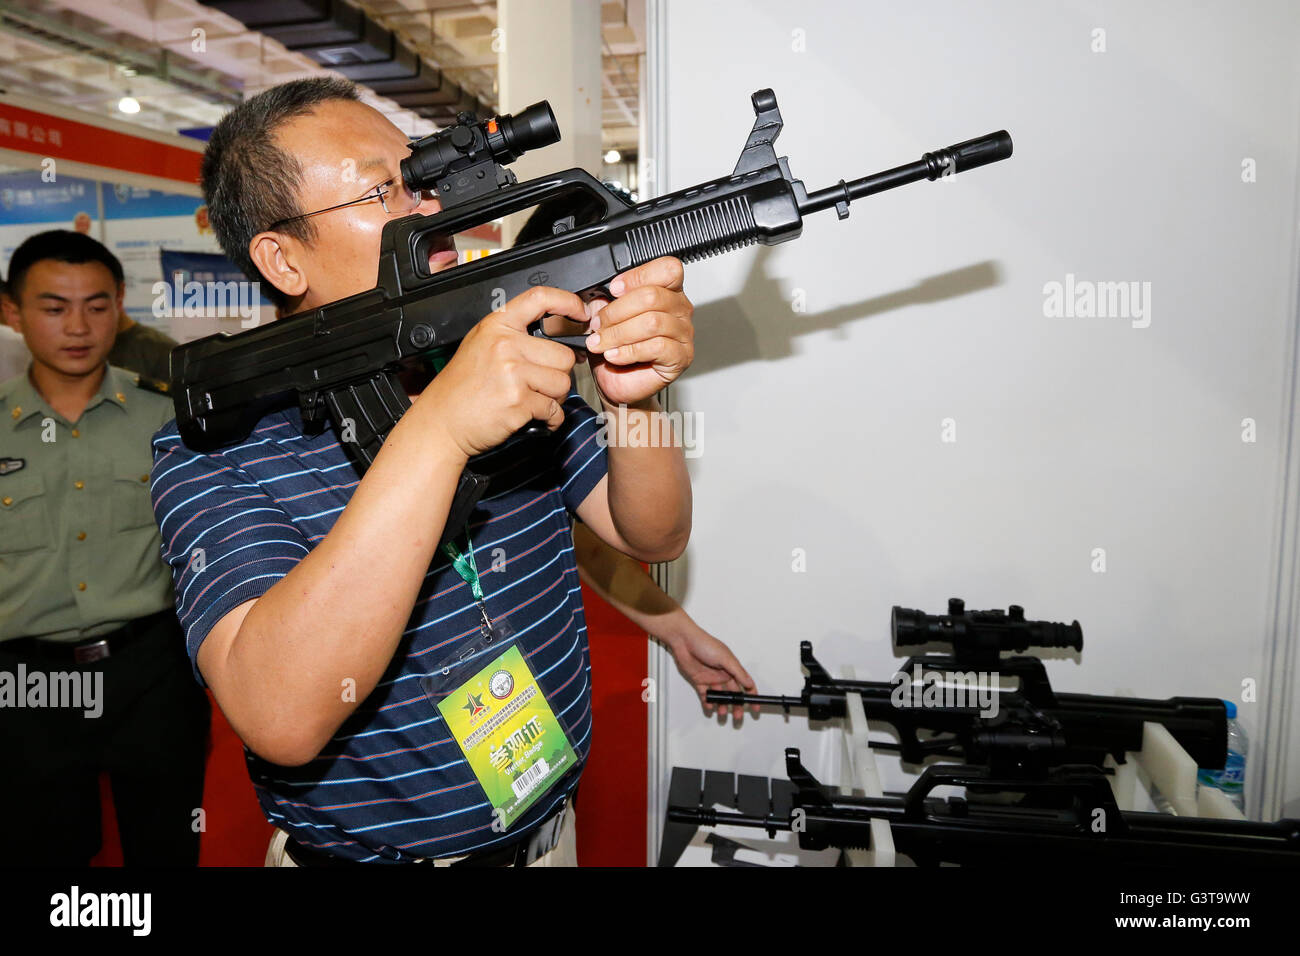 Beijing, China. 15th June, 2016. A visitor tries a gun targeting system at Chinese Defense Information Equipment Stock Photo